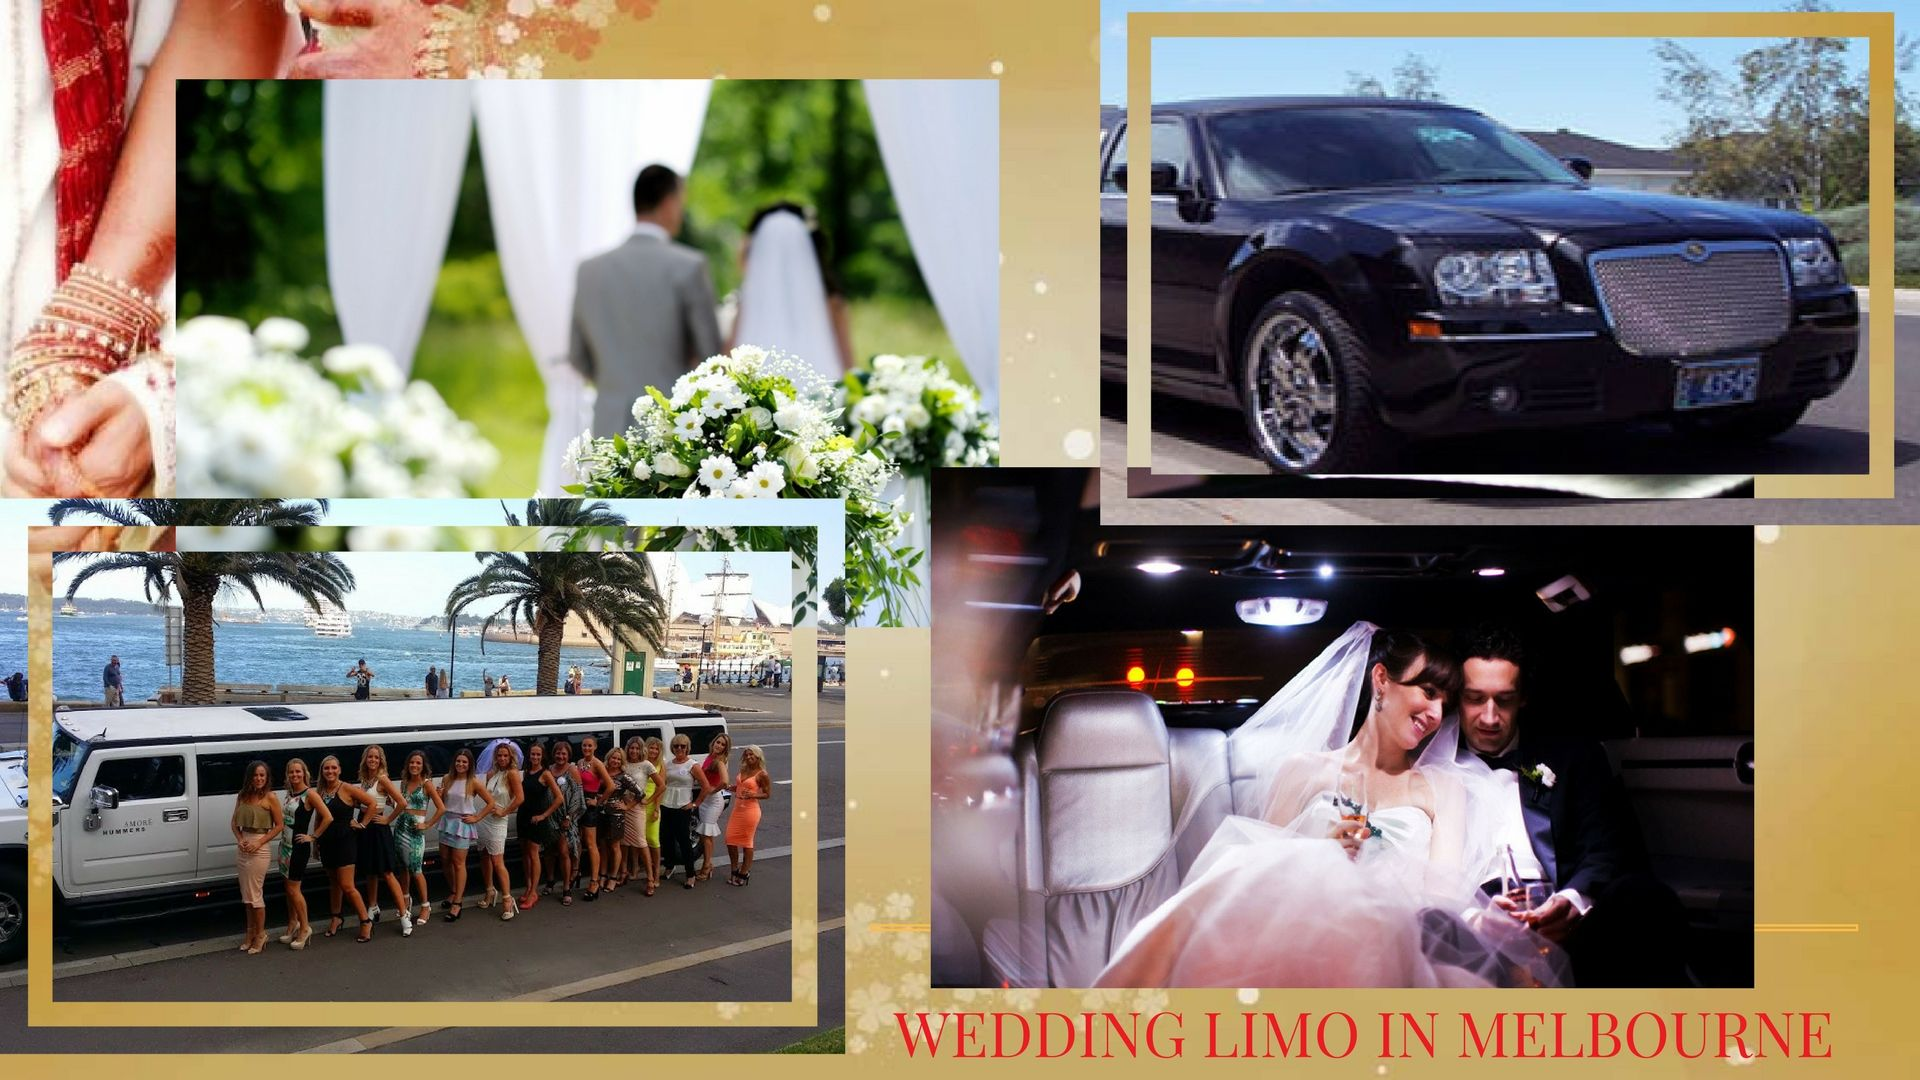 Making a Great Splash with a Wedding Limo in Melbourne...Partners mentioned in this article: Golden Gate Limousines/ A. Atlantis Executive Limos/ Oakcorp Extreme Super Stretches